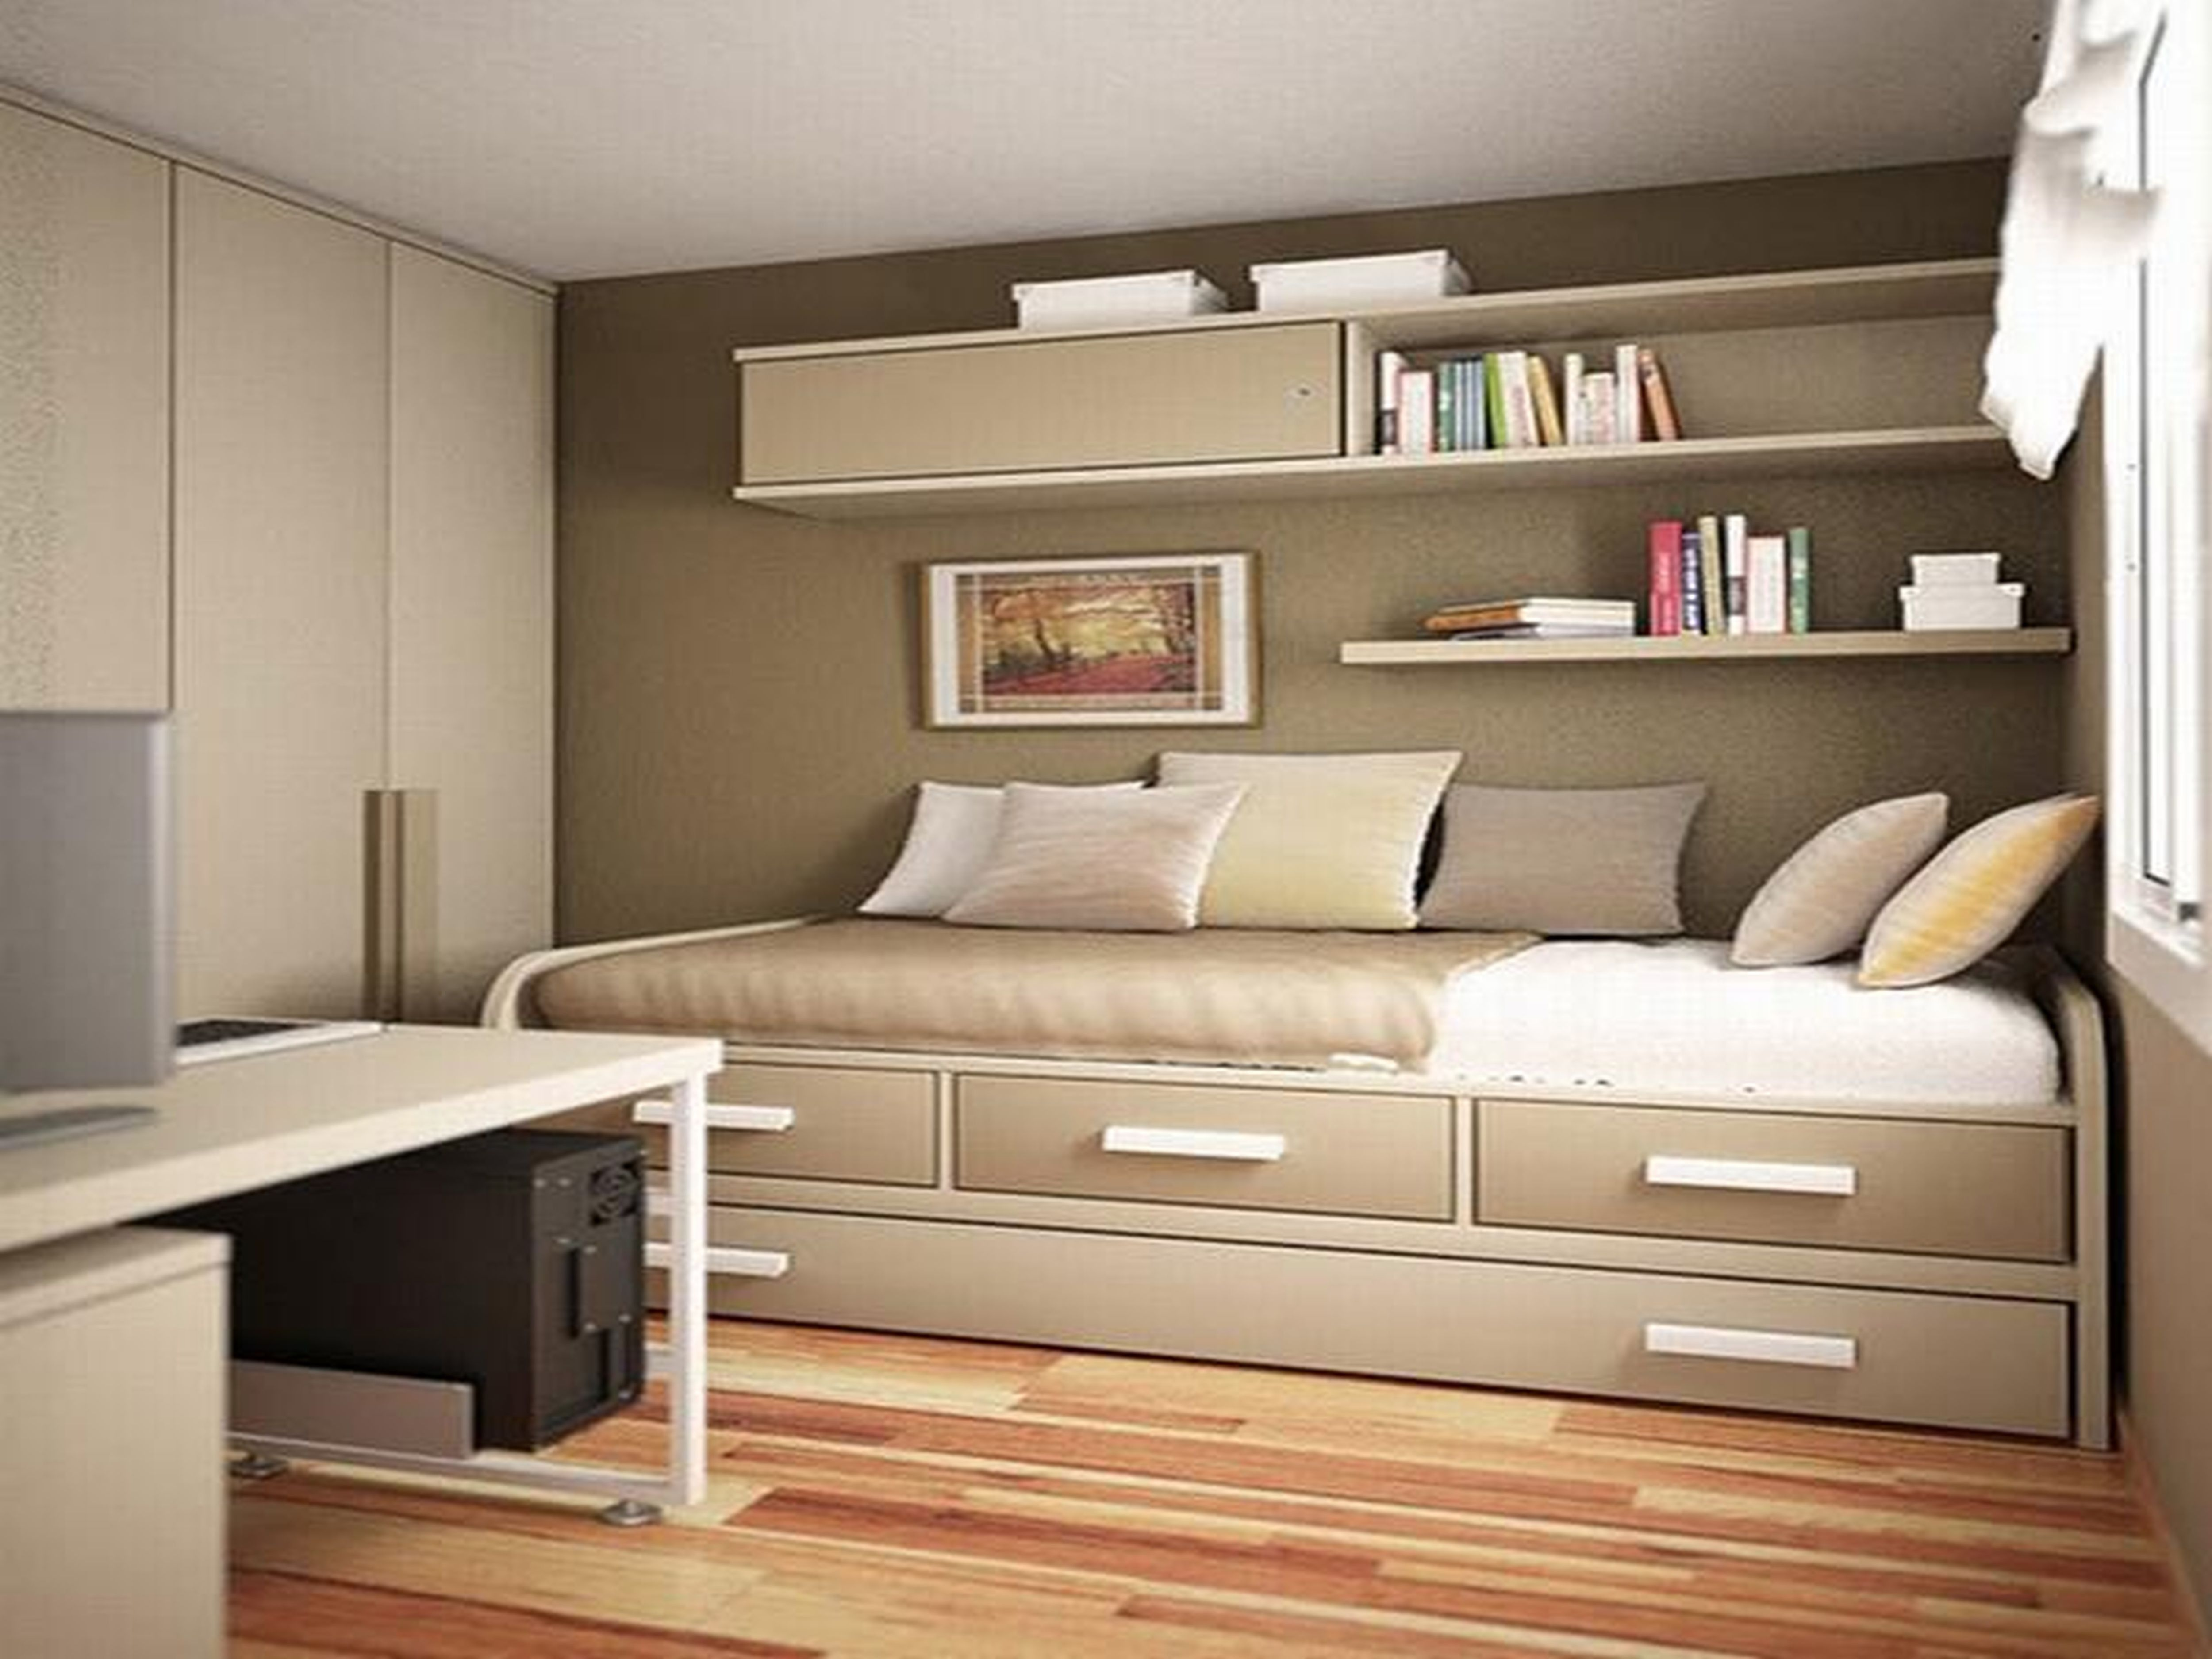 Bedroom Best Color For Small Bedroom Best Of Wooden Laminate Flooring Bedstead Small Room Bedroom Small Bedroom Small Bedroom Decor